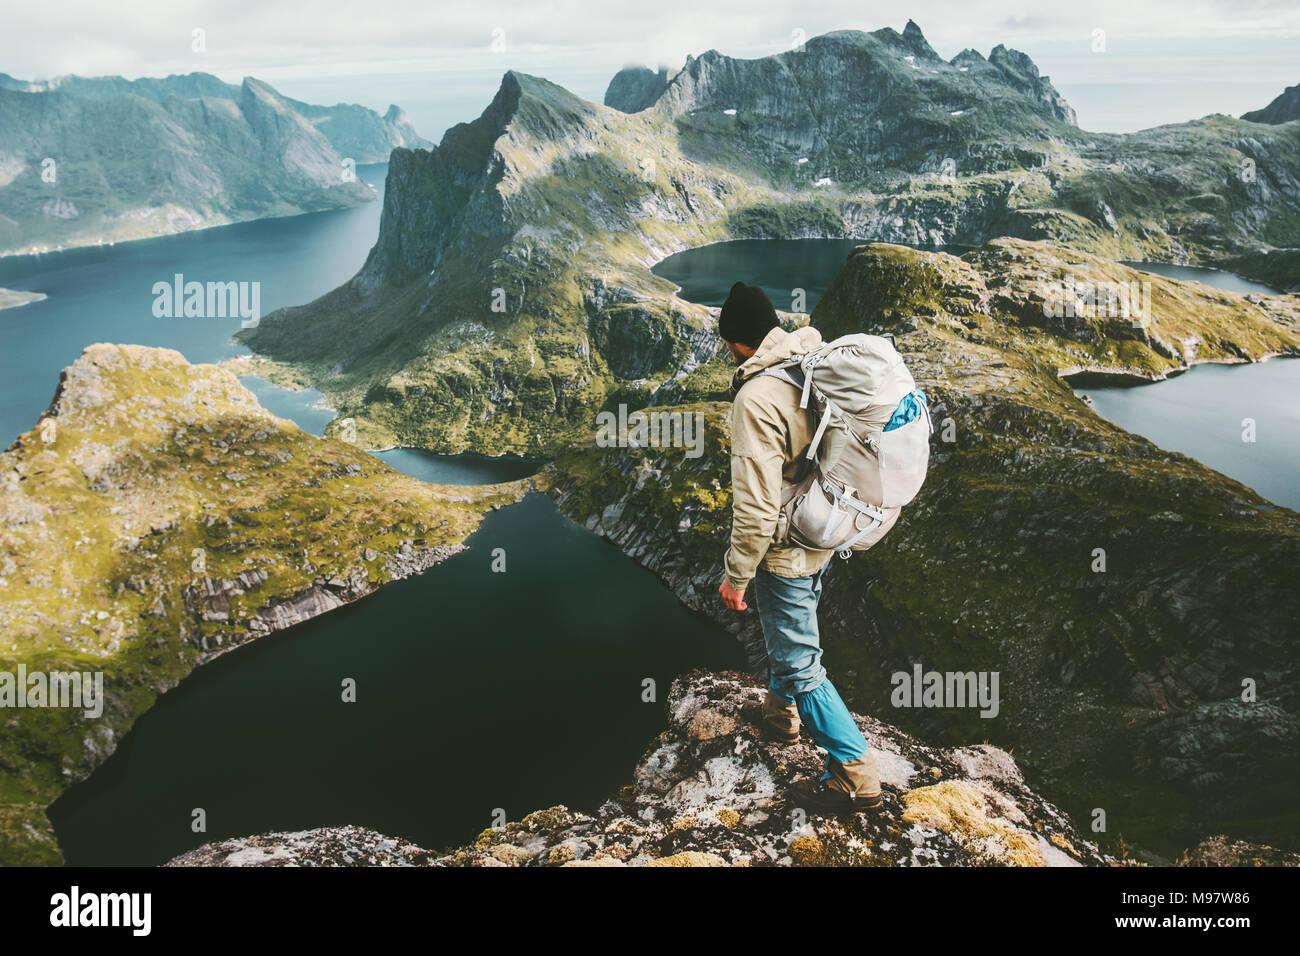 Discoverer man standing on cliff mountain in Norway Traveling lifestyle adventure concept hiking active summer vacations outdoor aerial view - Stock Image